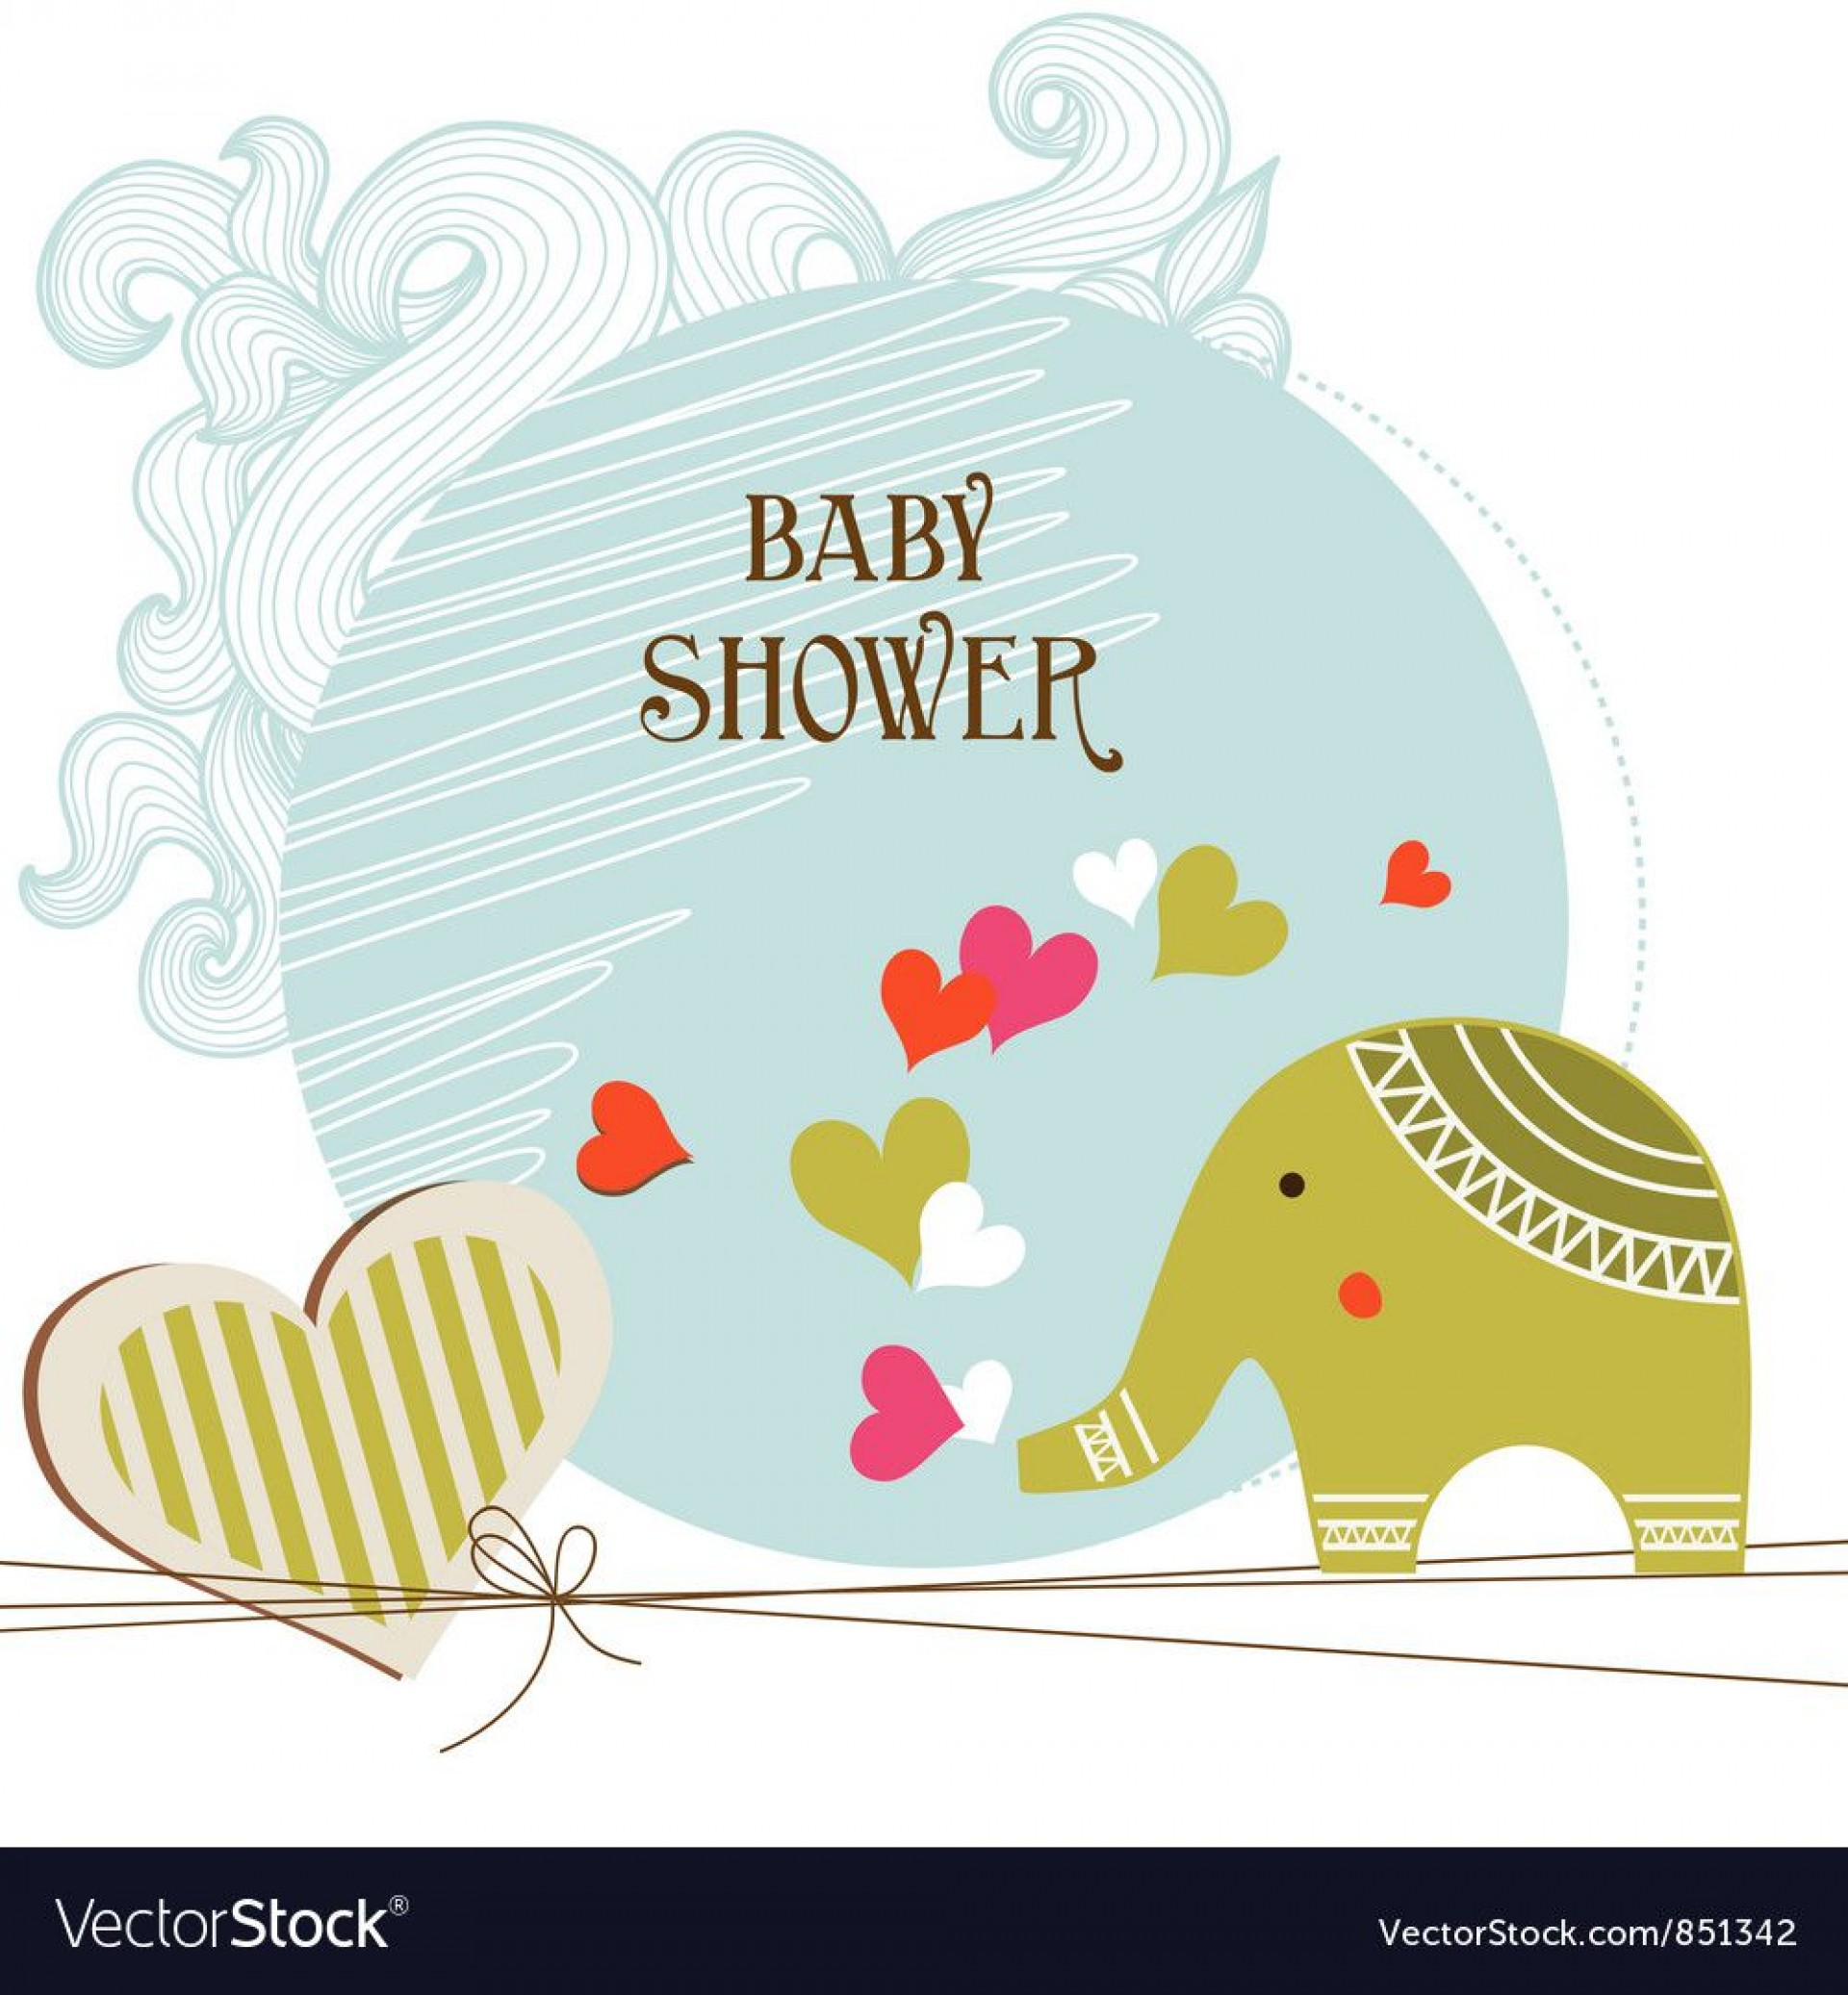 007 Excellent Baby Shower Card Template Highest Clarity  Microsoft Word Invitation Design Online Printable Free1920